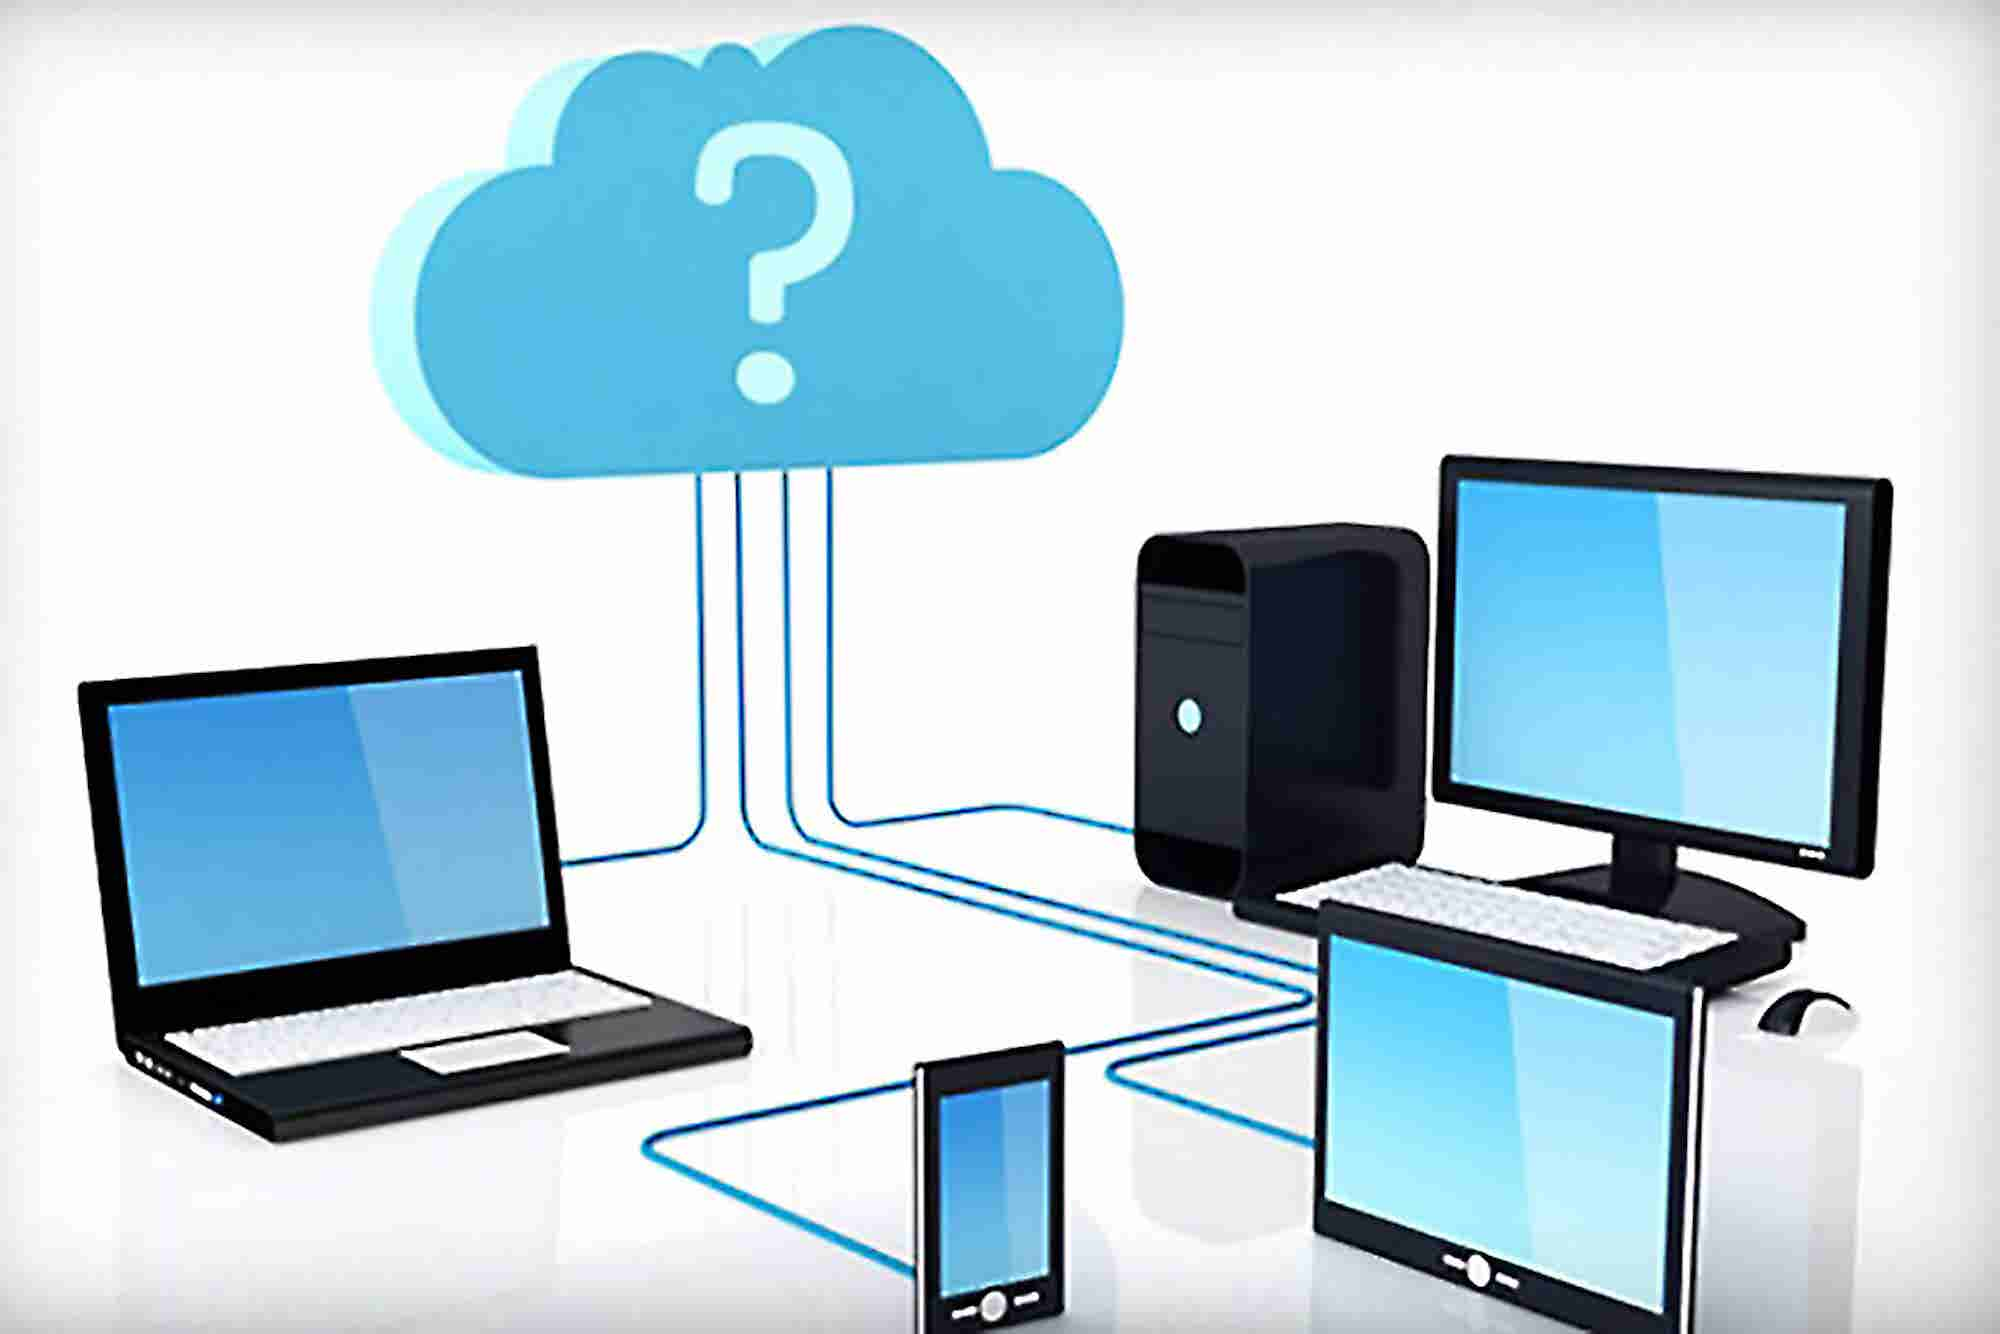 10 Questions to Ask When Choosing a Cloud Provider